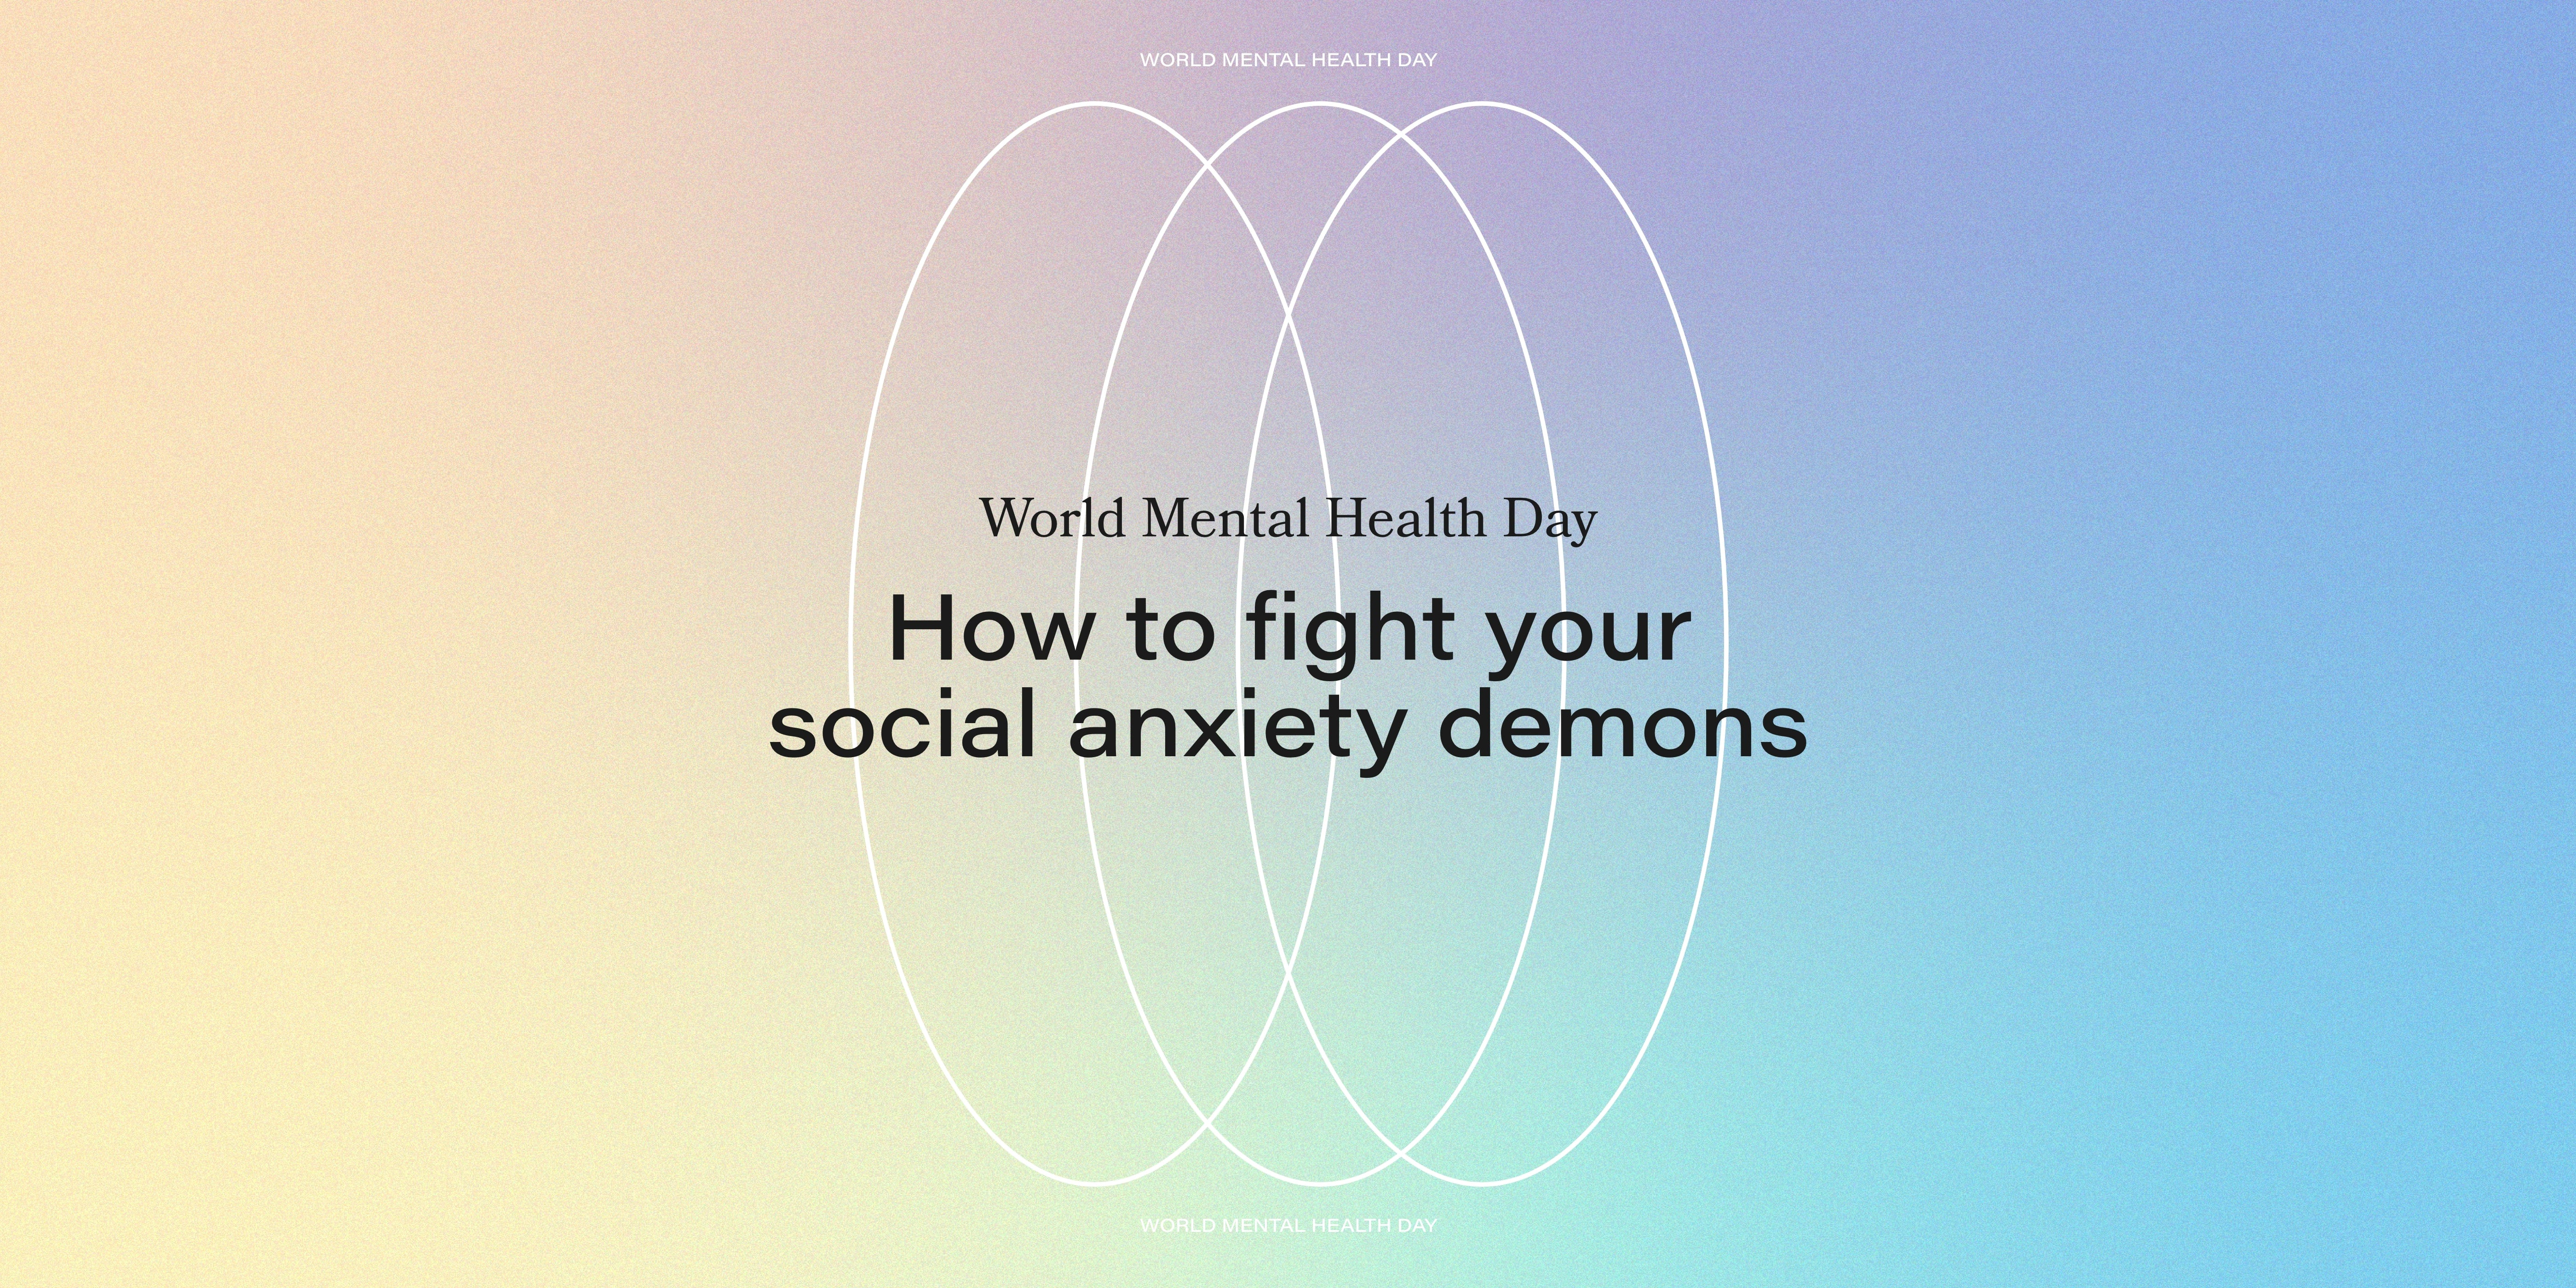 World Mental Health Day - How to fight your social anxiety demons